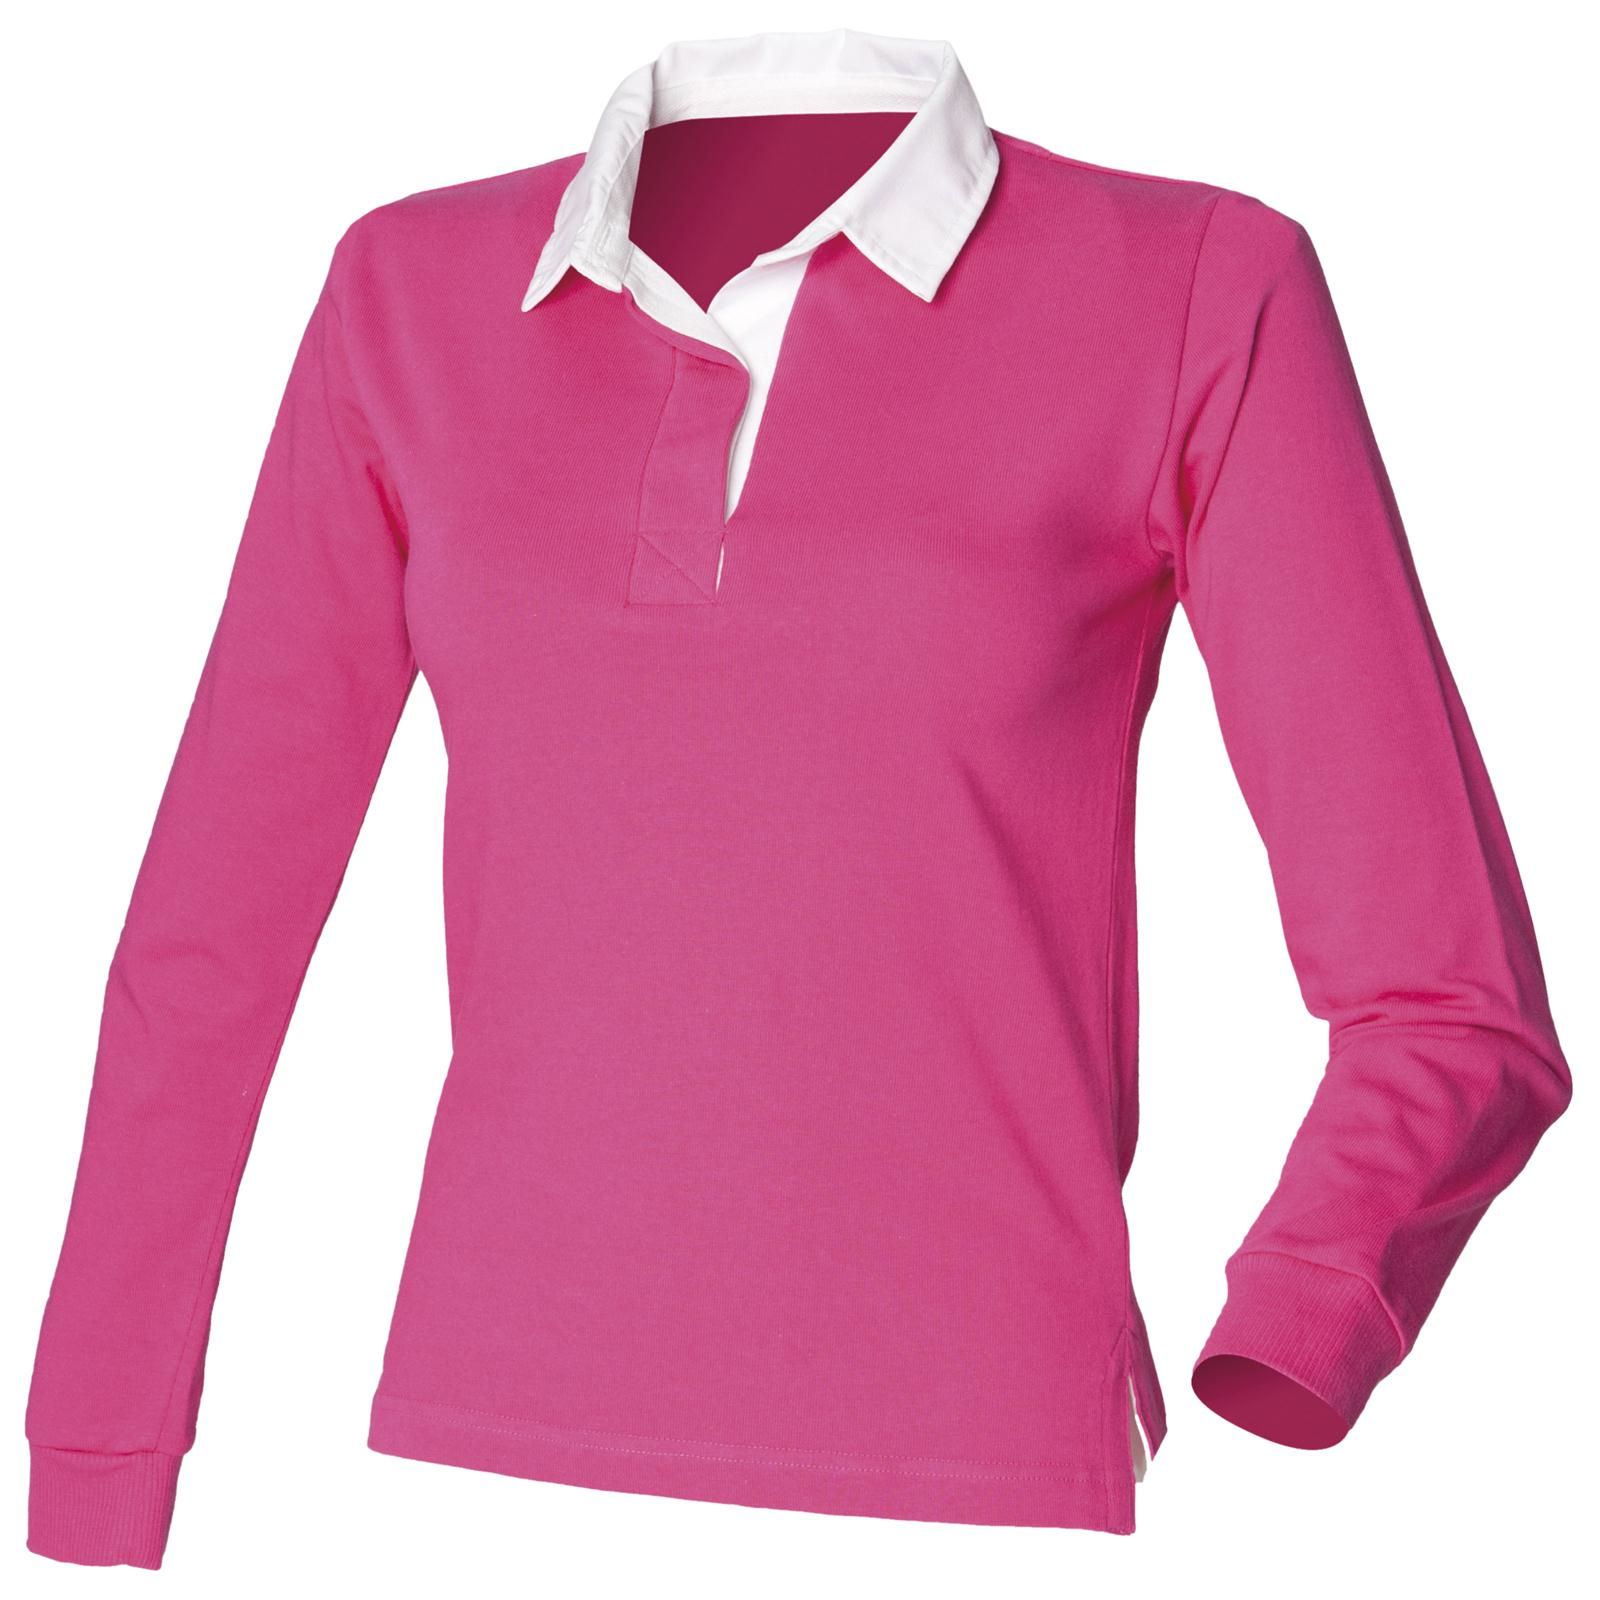 New Front Row Womens Ladies Long Sleeve Classic Rugby